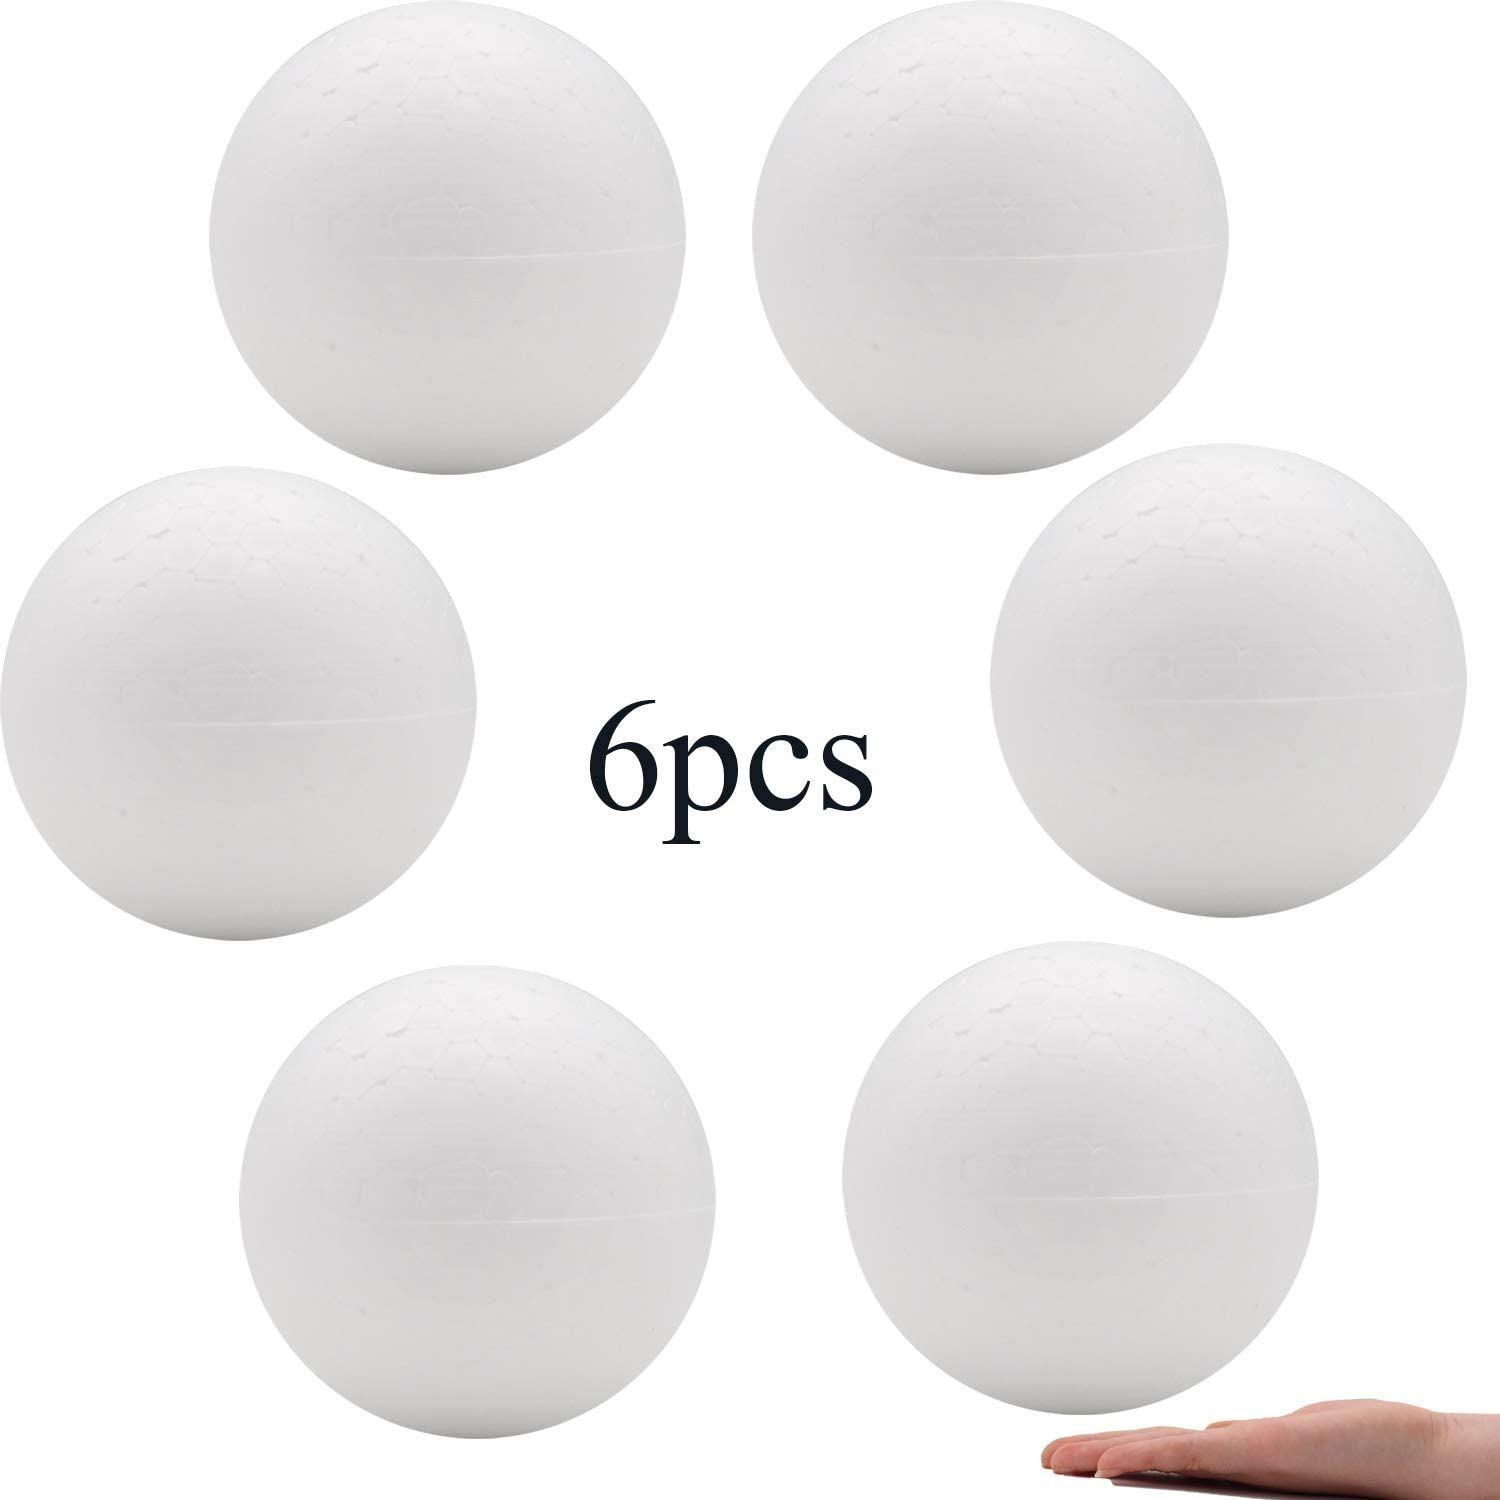 Crafare 6pc 6 Inch White Styrofoam Balls for Holiday Wedding Crafts Making Smooth polystyrene Foam Balls for School Projects